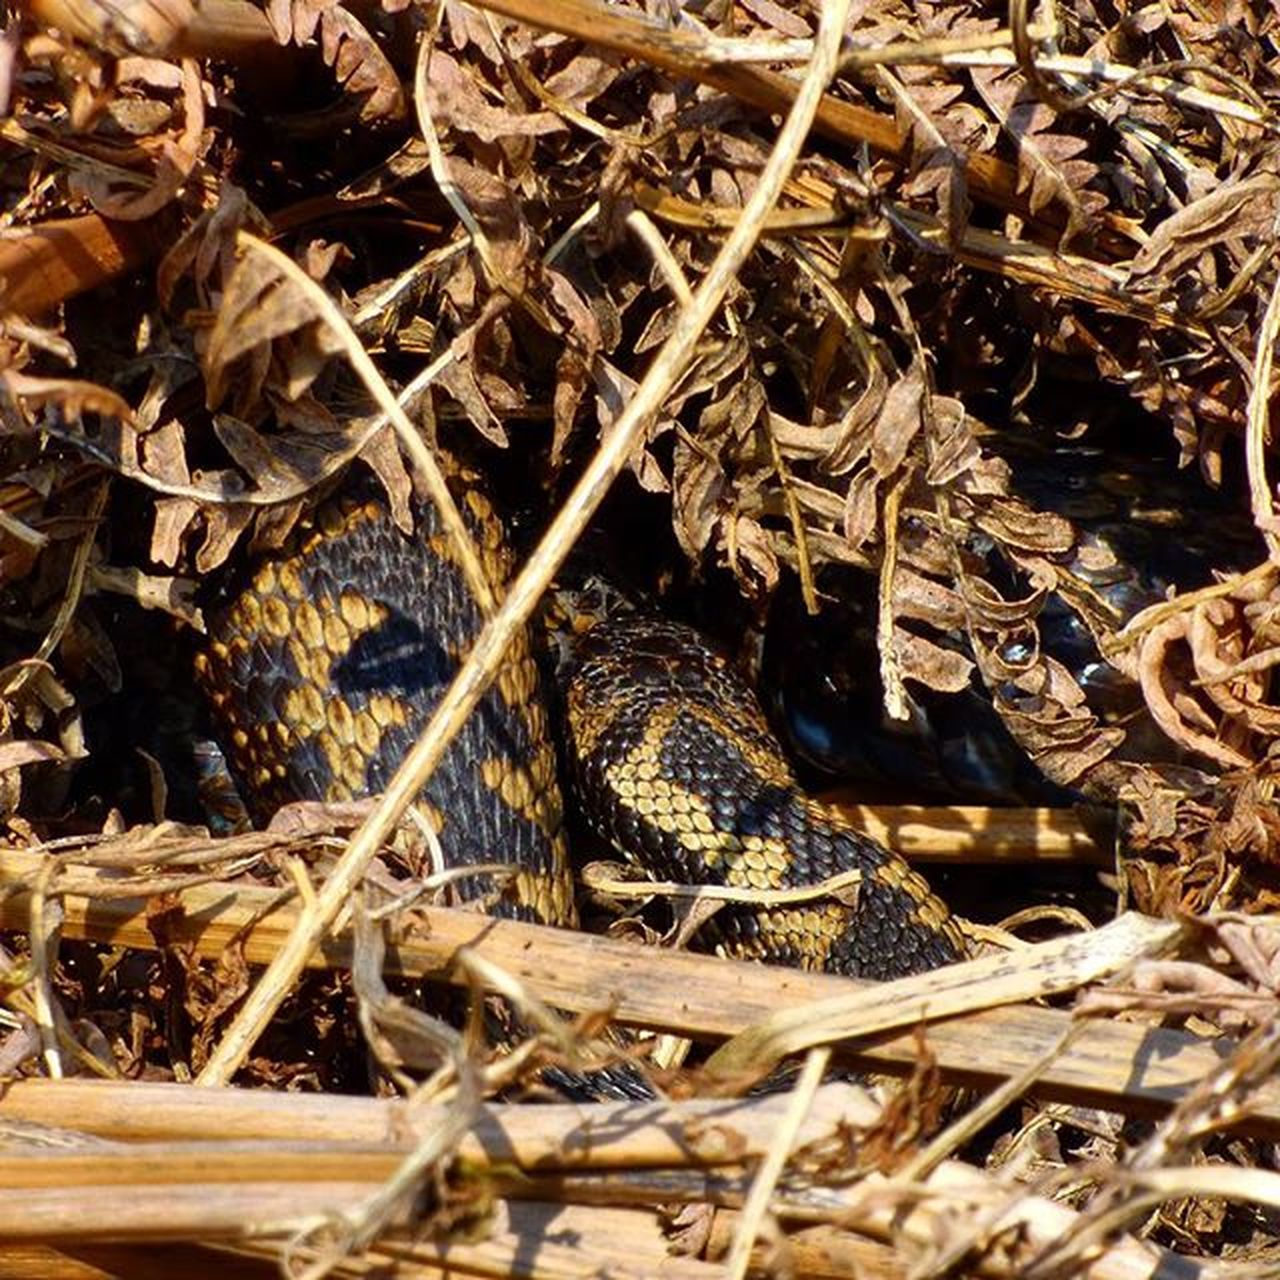 My first ever Wild Adder spot, she's so well camouflaged and was too toasty to come out. The centre coil is the back of her head at Rspbpulborough @rspb_love_nature @sussexwildlifetrust Lumix Snake Reptile Ukwildlife Nature Photography Uknaturecollective Nature Followme Wildlife Nature England Rsa_nature Ukwildlifeimages Naturehippys Exclusive_wildlife Springwatch Ig_sussex